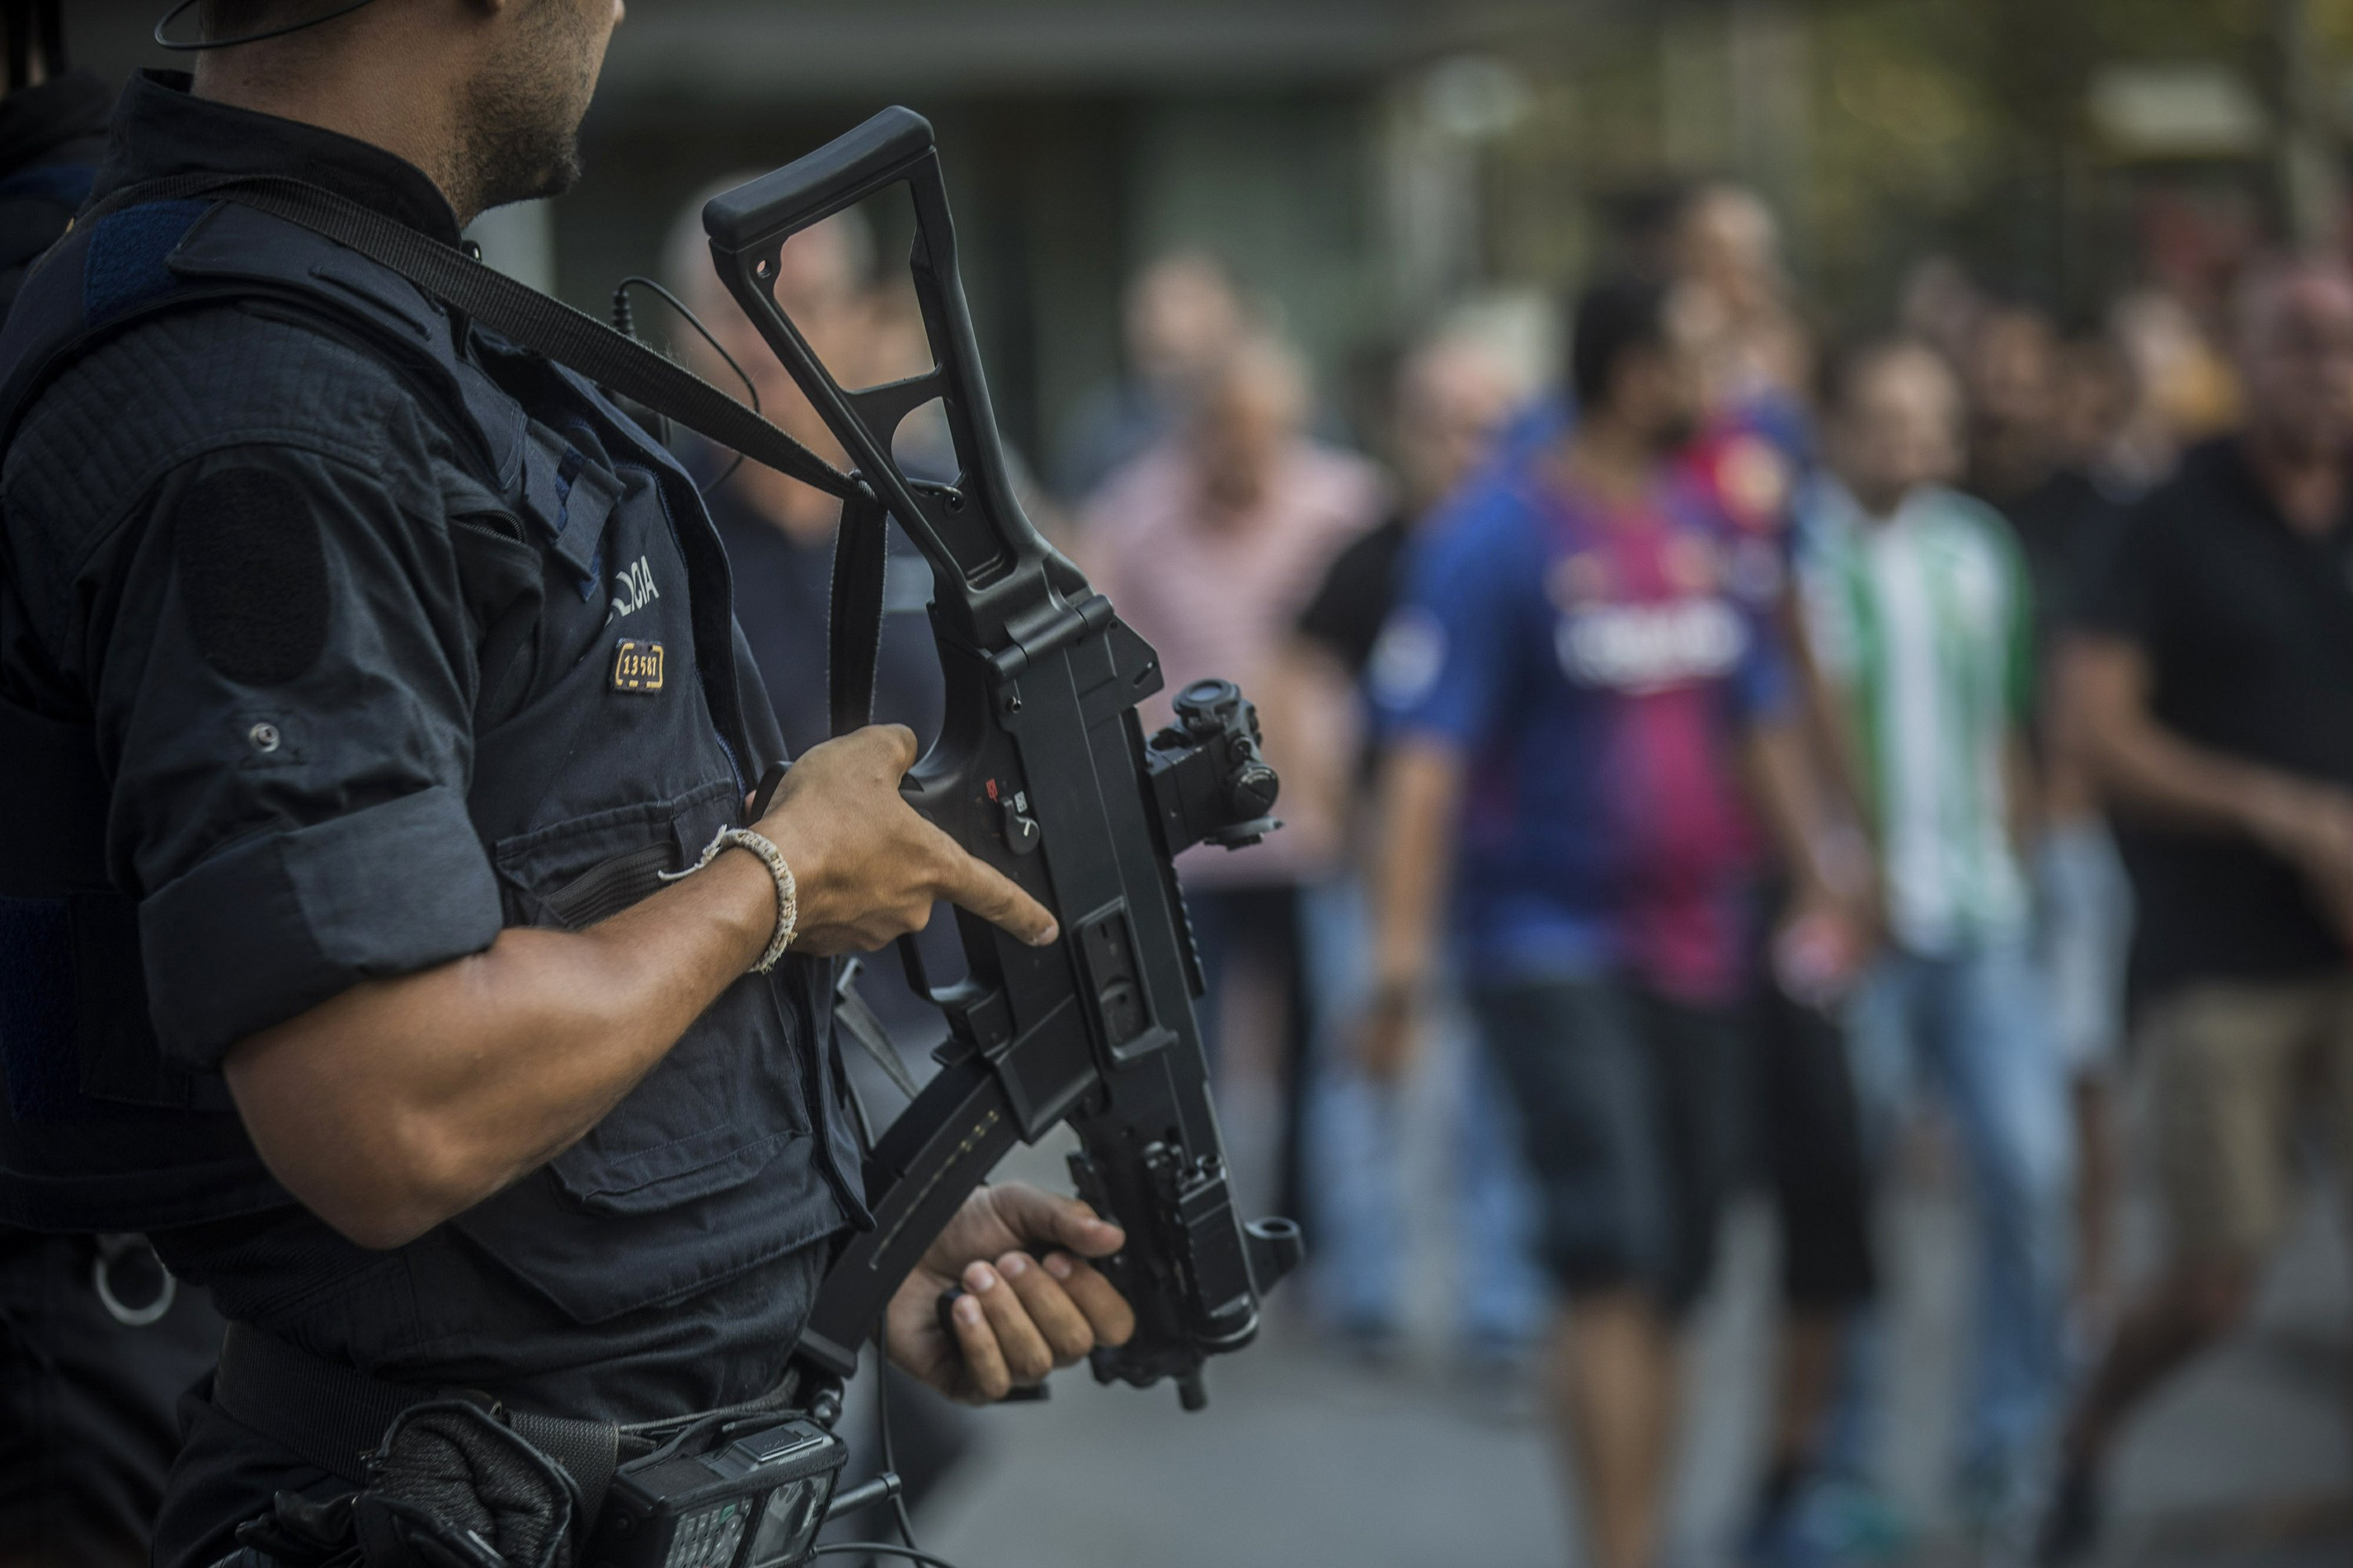 Manhunt intensifies in Spain for suspected final cell member